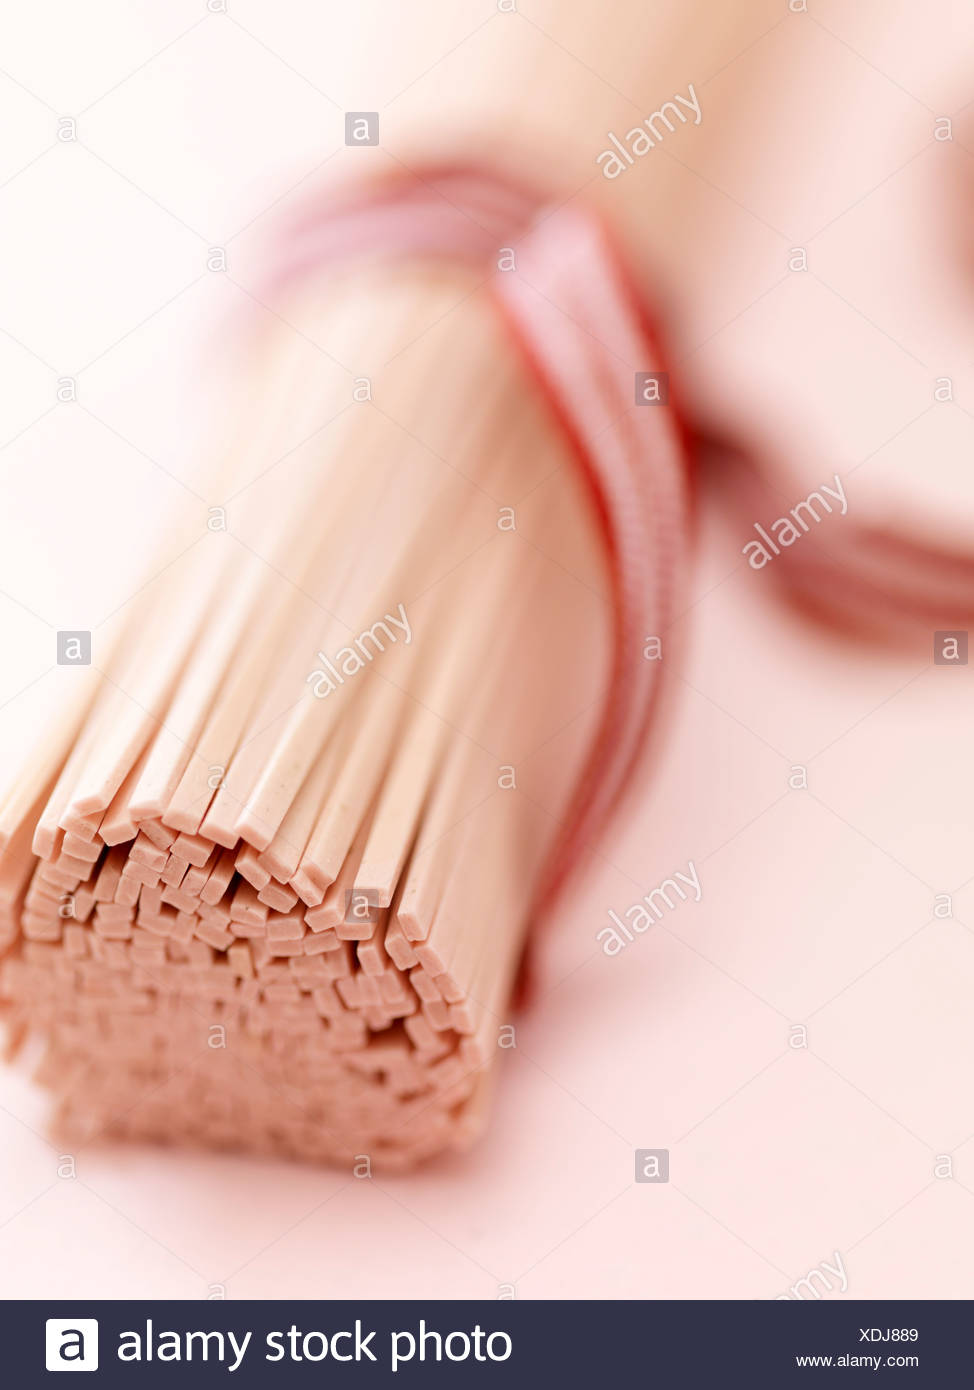 Bundle of udons - Stock Image